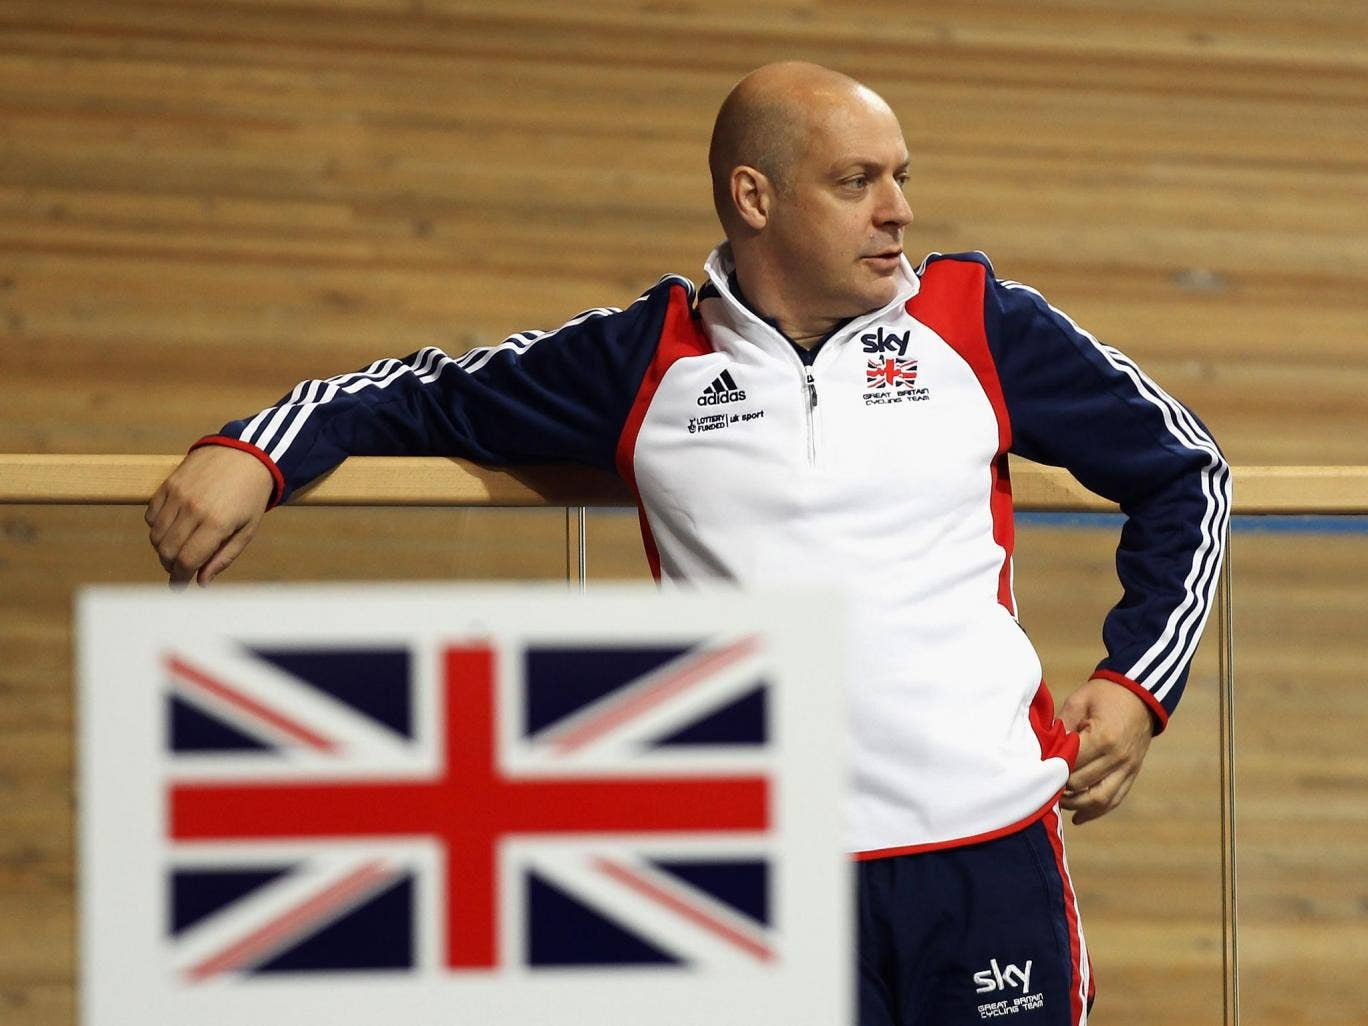 Sir Dave Brailsford was not present at the Track World Championships